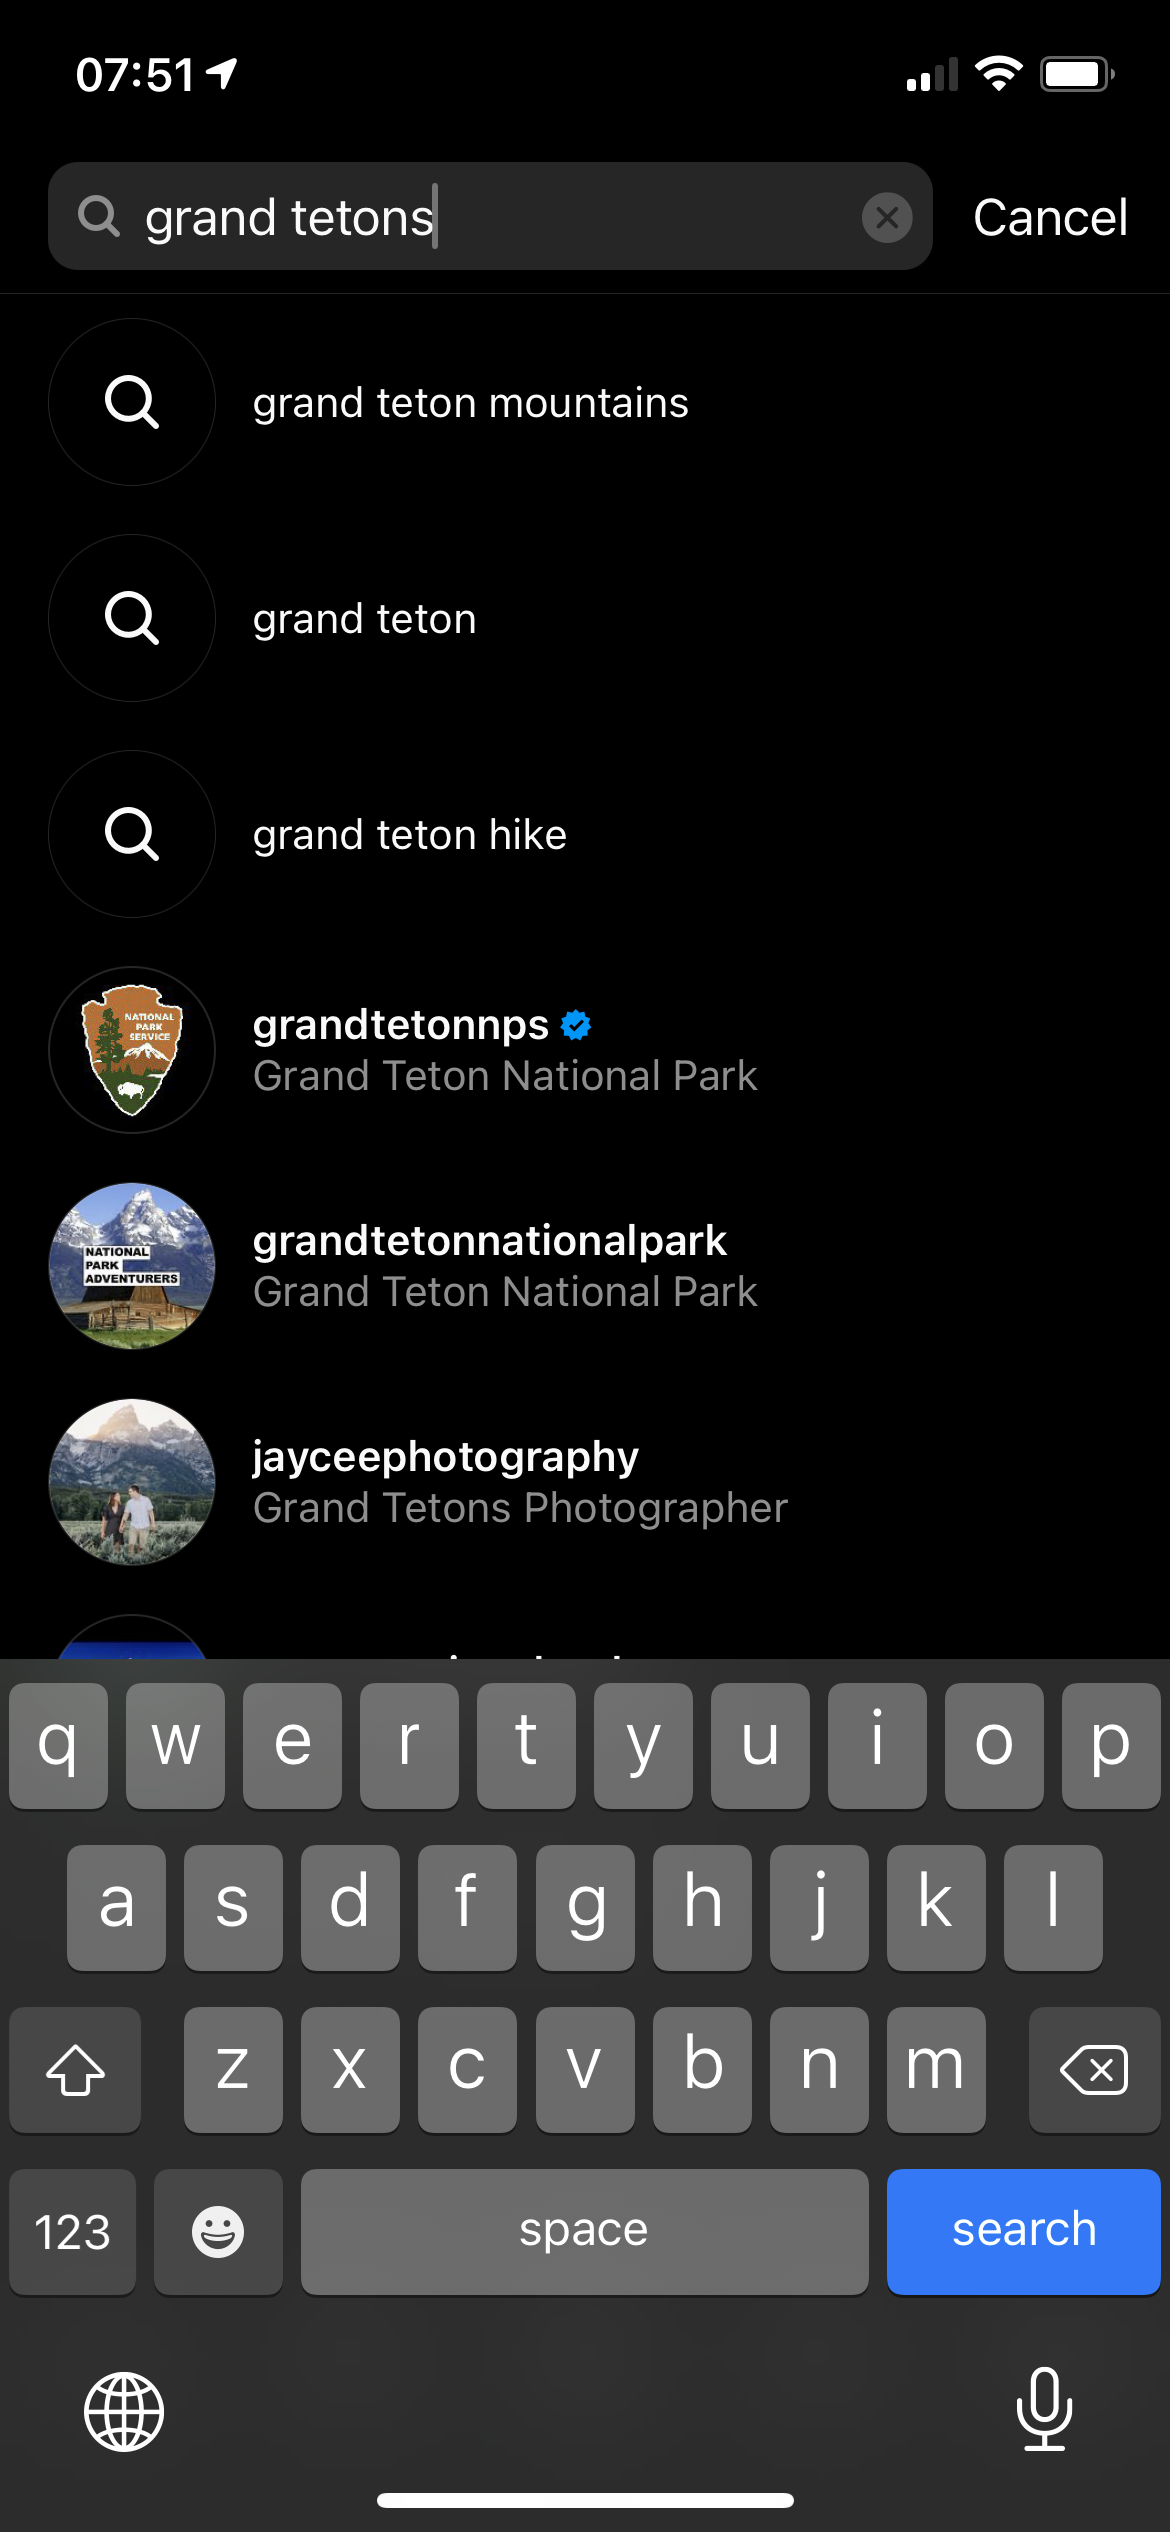 Instagram SEO Search for Grand Tetons